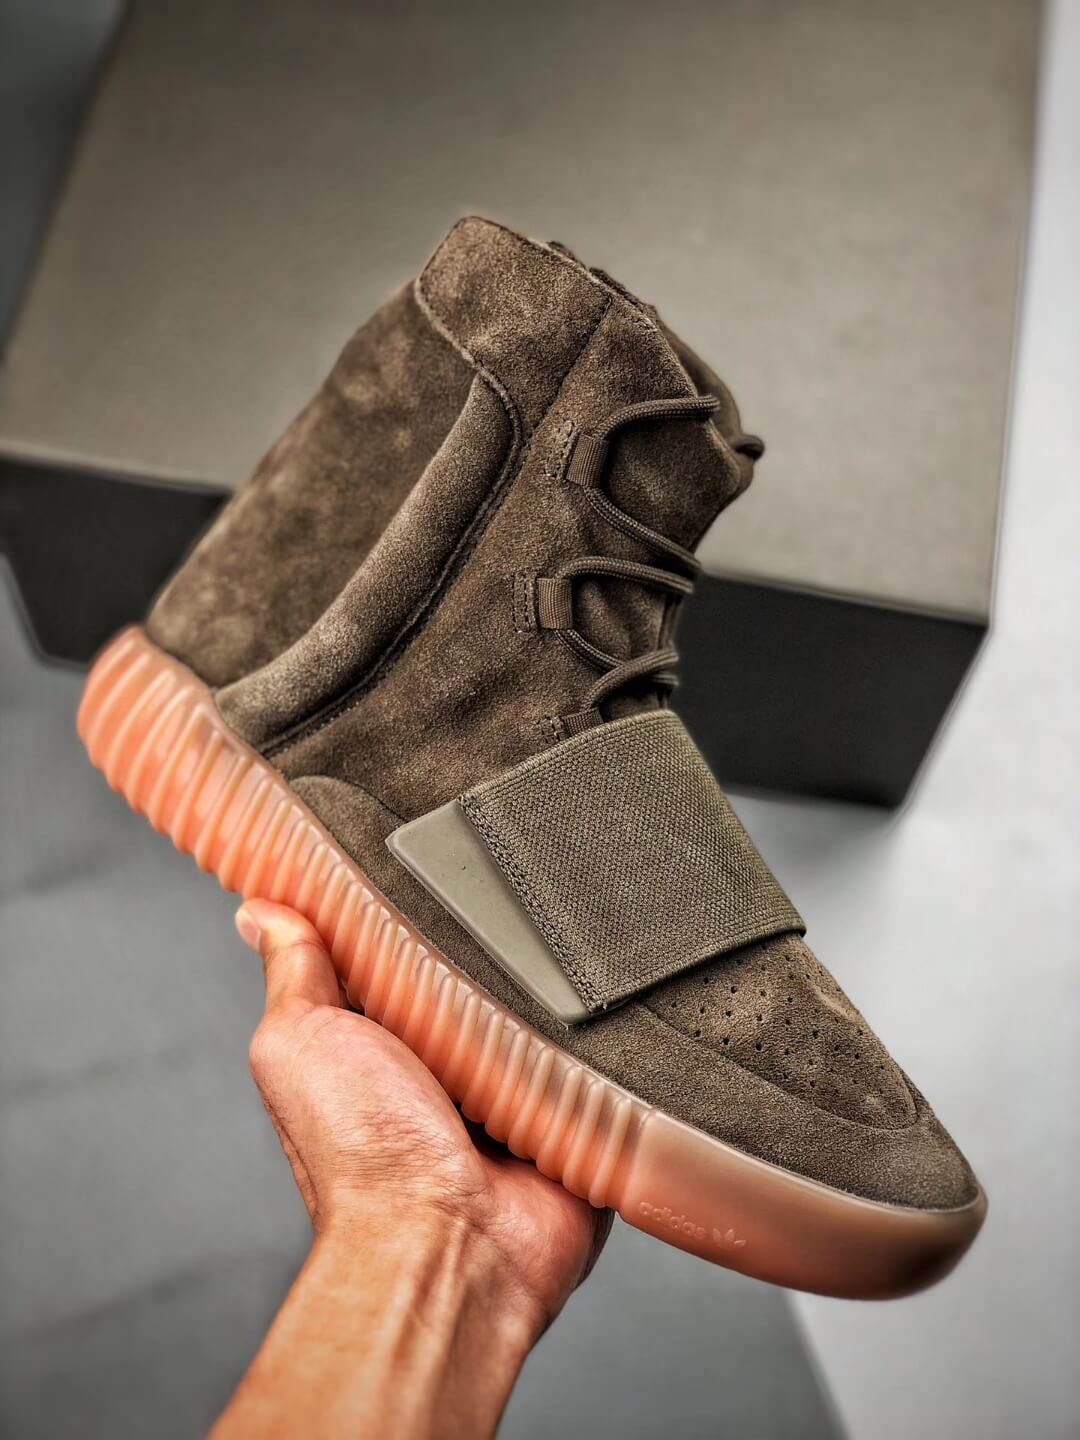 The Adidas Yeezy Boost 750 Chocolate Sneaker Quality RepShoes 01